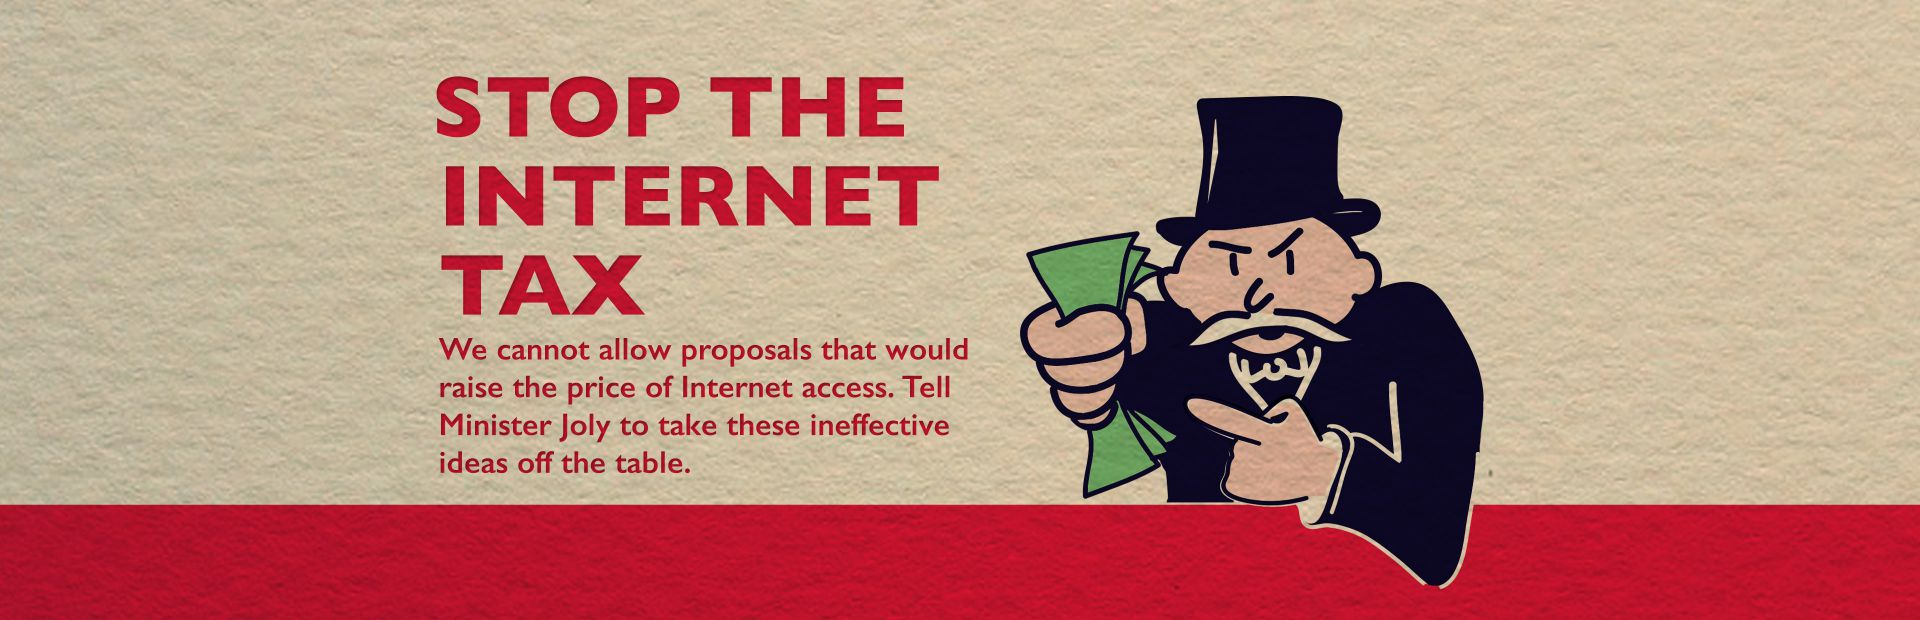 Stop the Internet tax